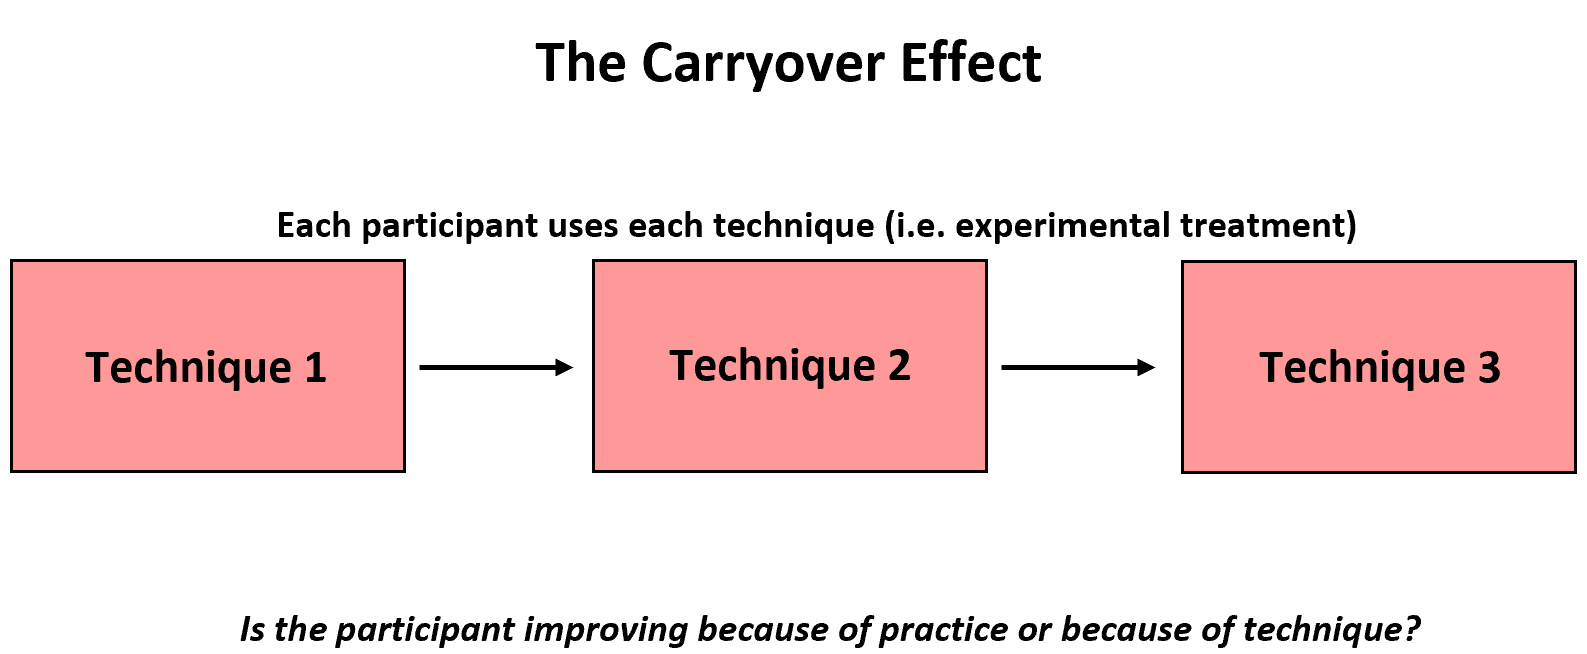 Carryover effect